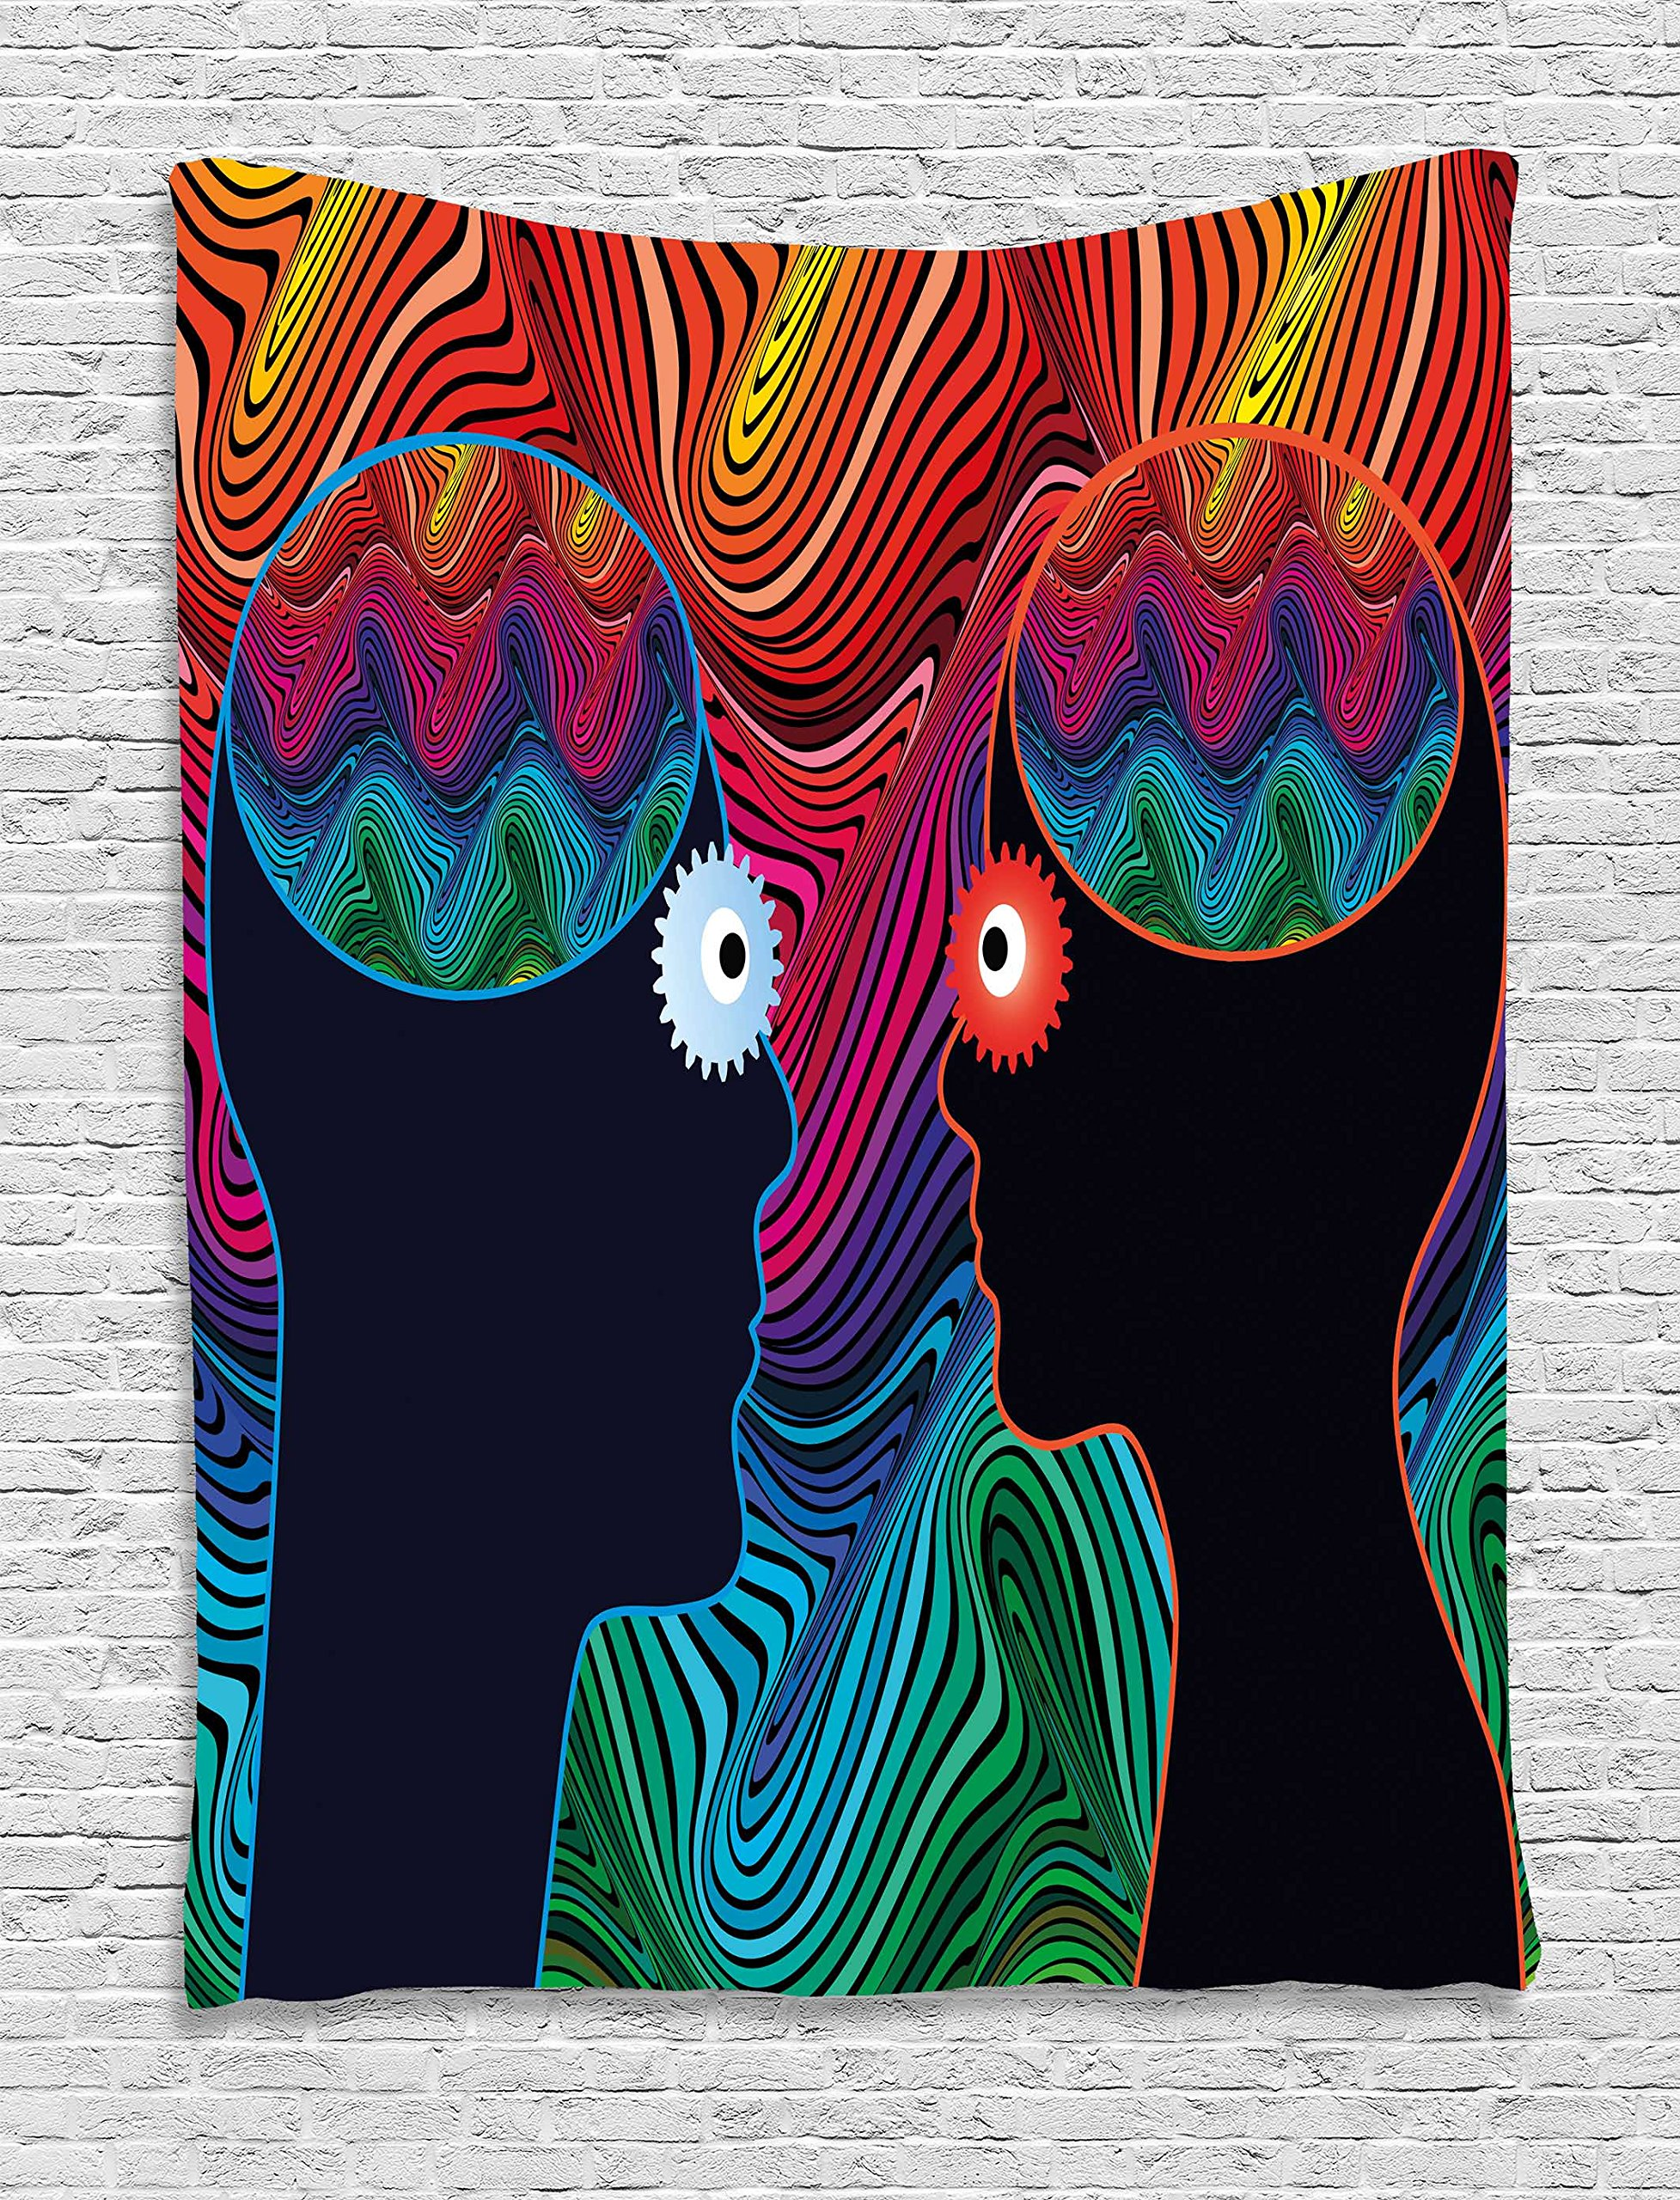 Ambesonne Psychedelic Tapestry, Crazy in Love Couple Romance Man and Woman with Floral Eyes Stripes Illustration, Wall Hanging for Bedroom Living Room Dorm, 60 W x 80 L Inches, Multi